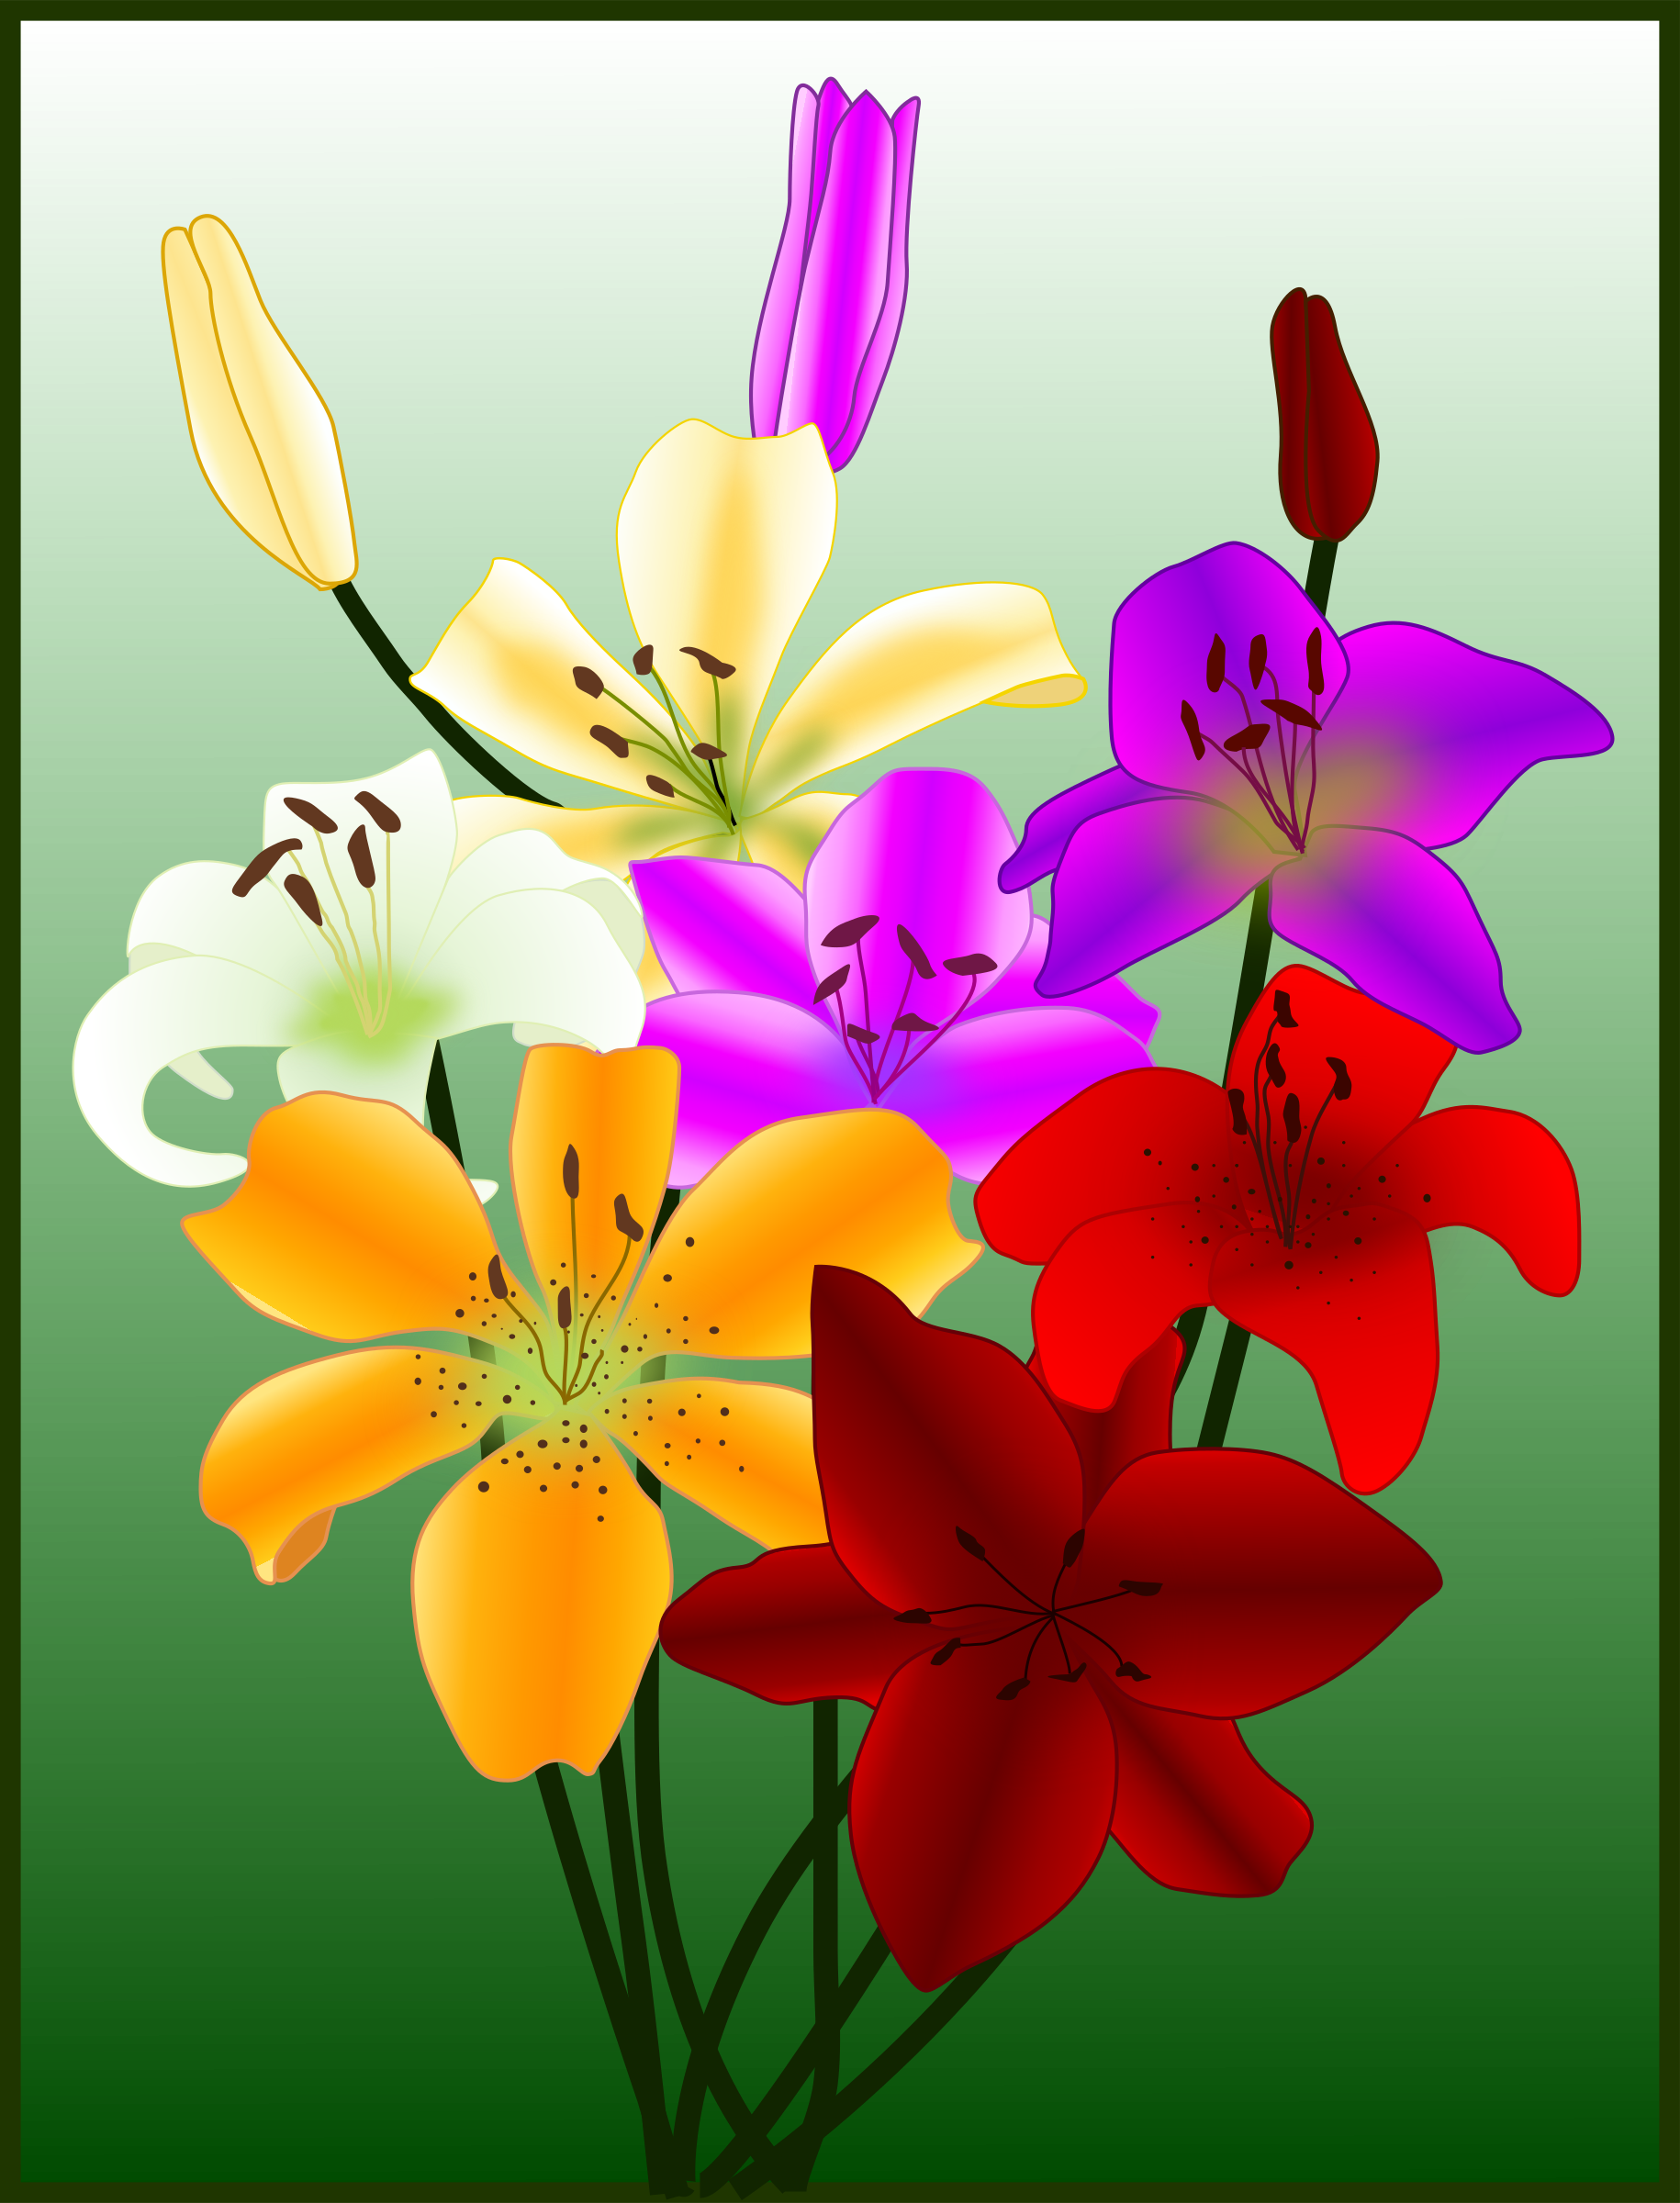 Gigli lilies big image. Flowers clipart card